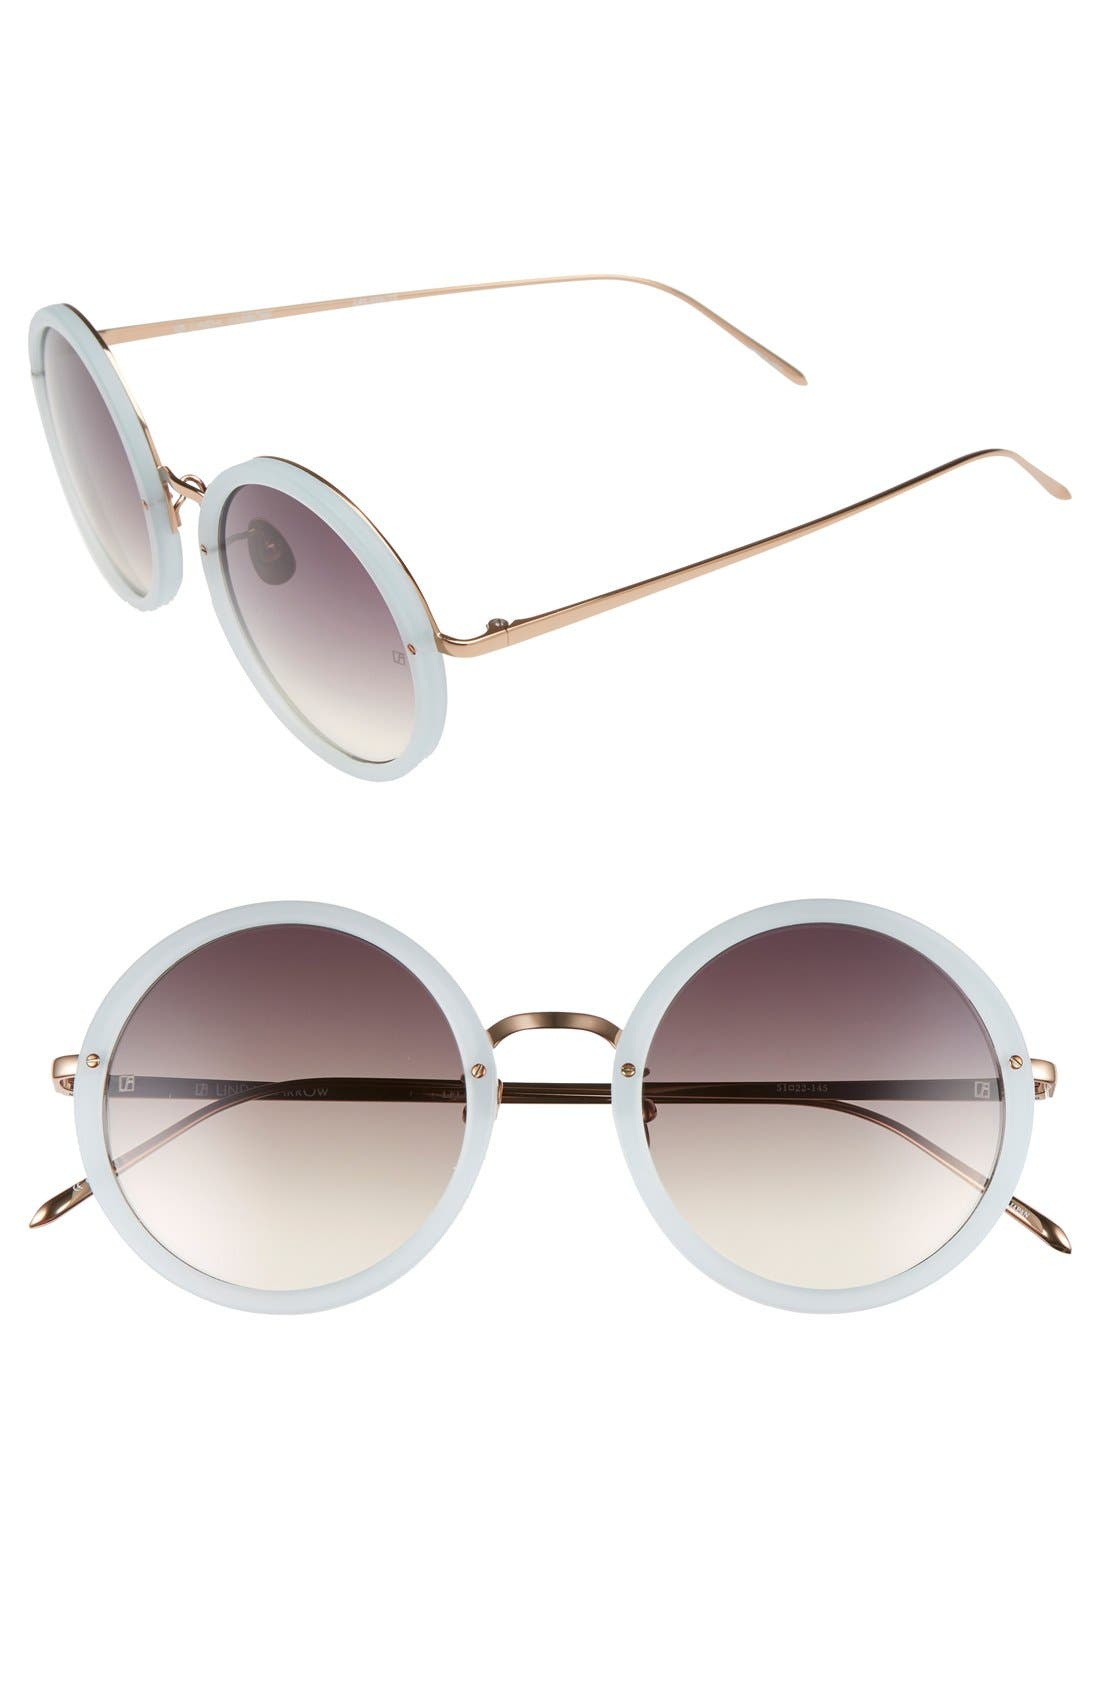 51mm Round 18 Karat Rose Gold Sunglasses,                             Main thumbnail 1, color,                             Iris/ Grey Grad